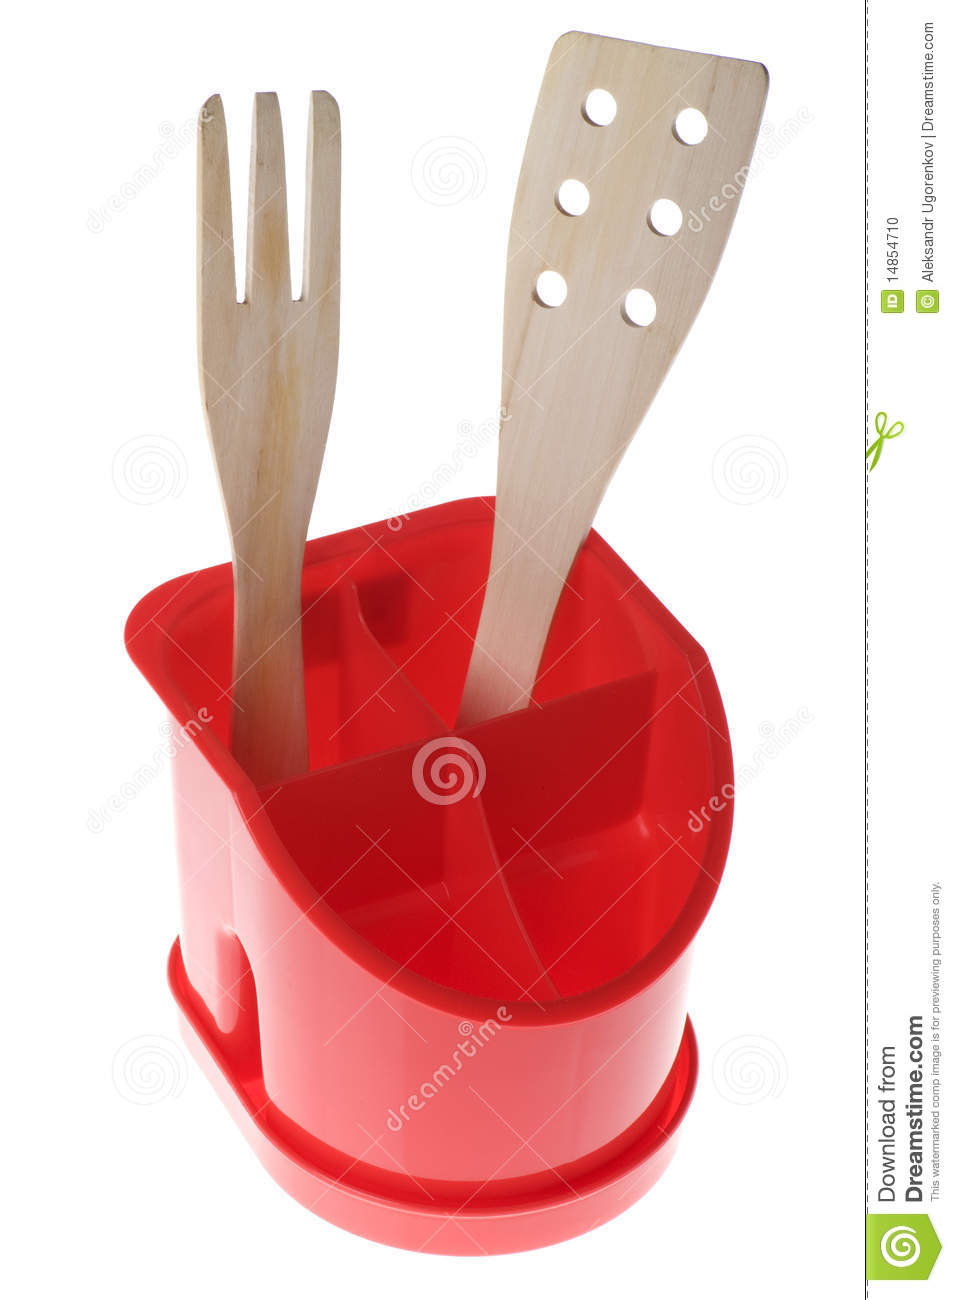 Plastic support for kitchen utensil